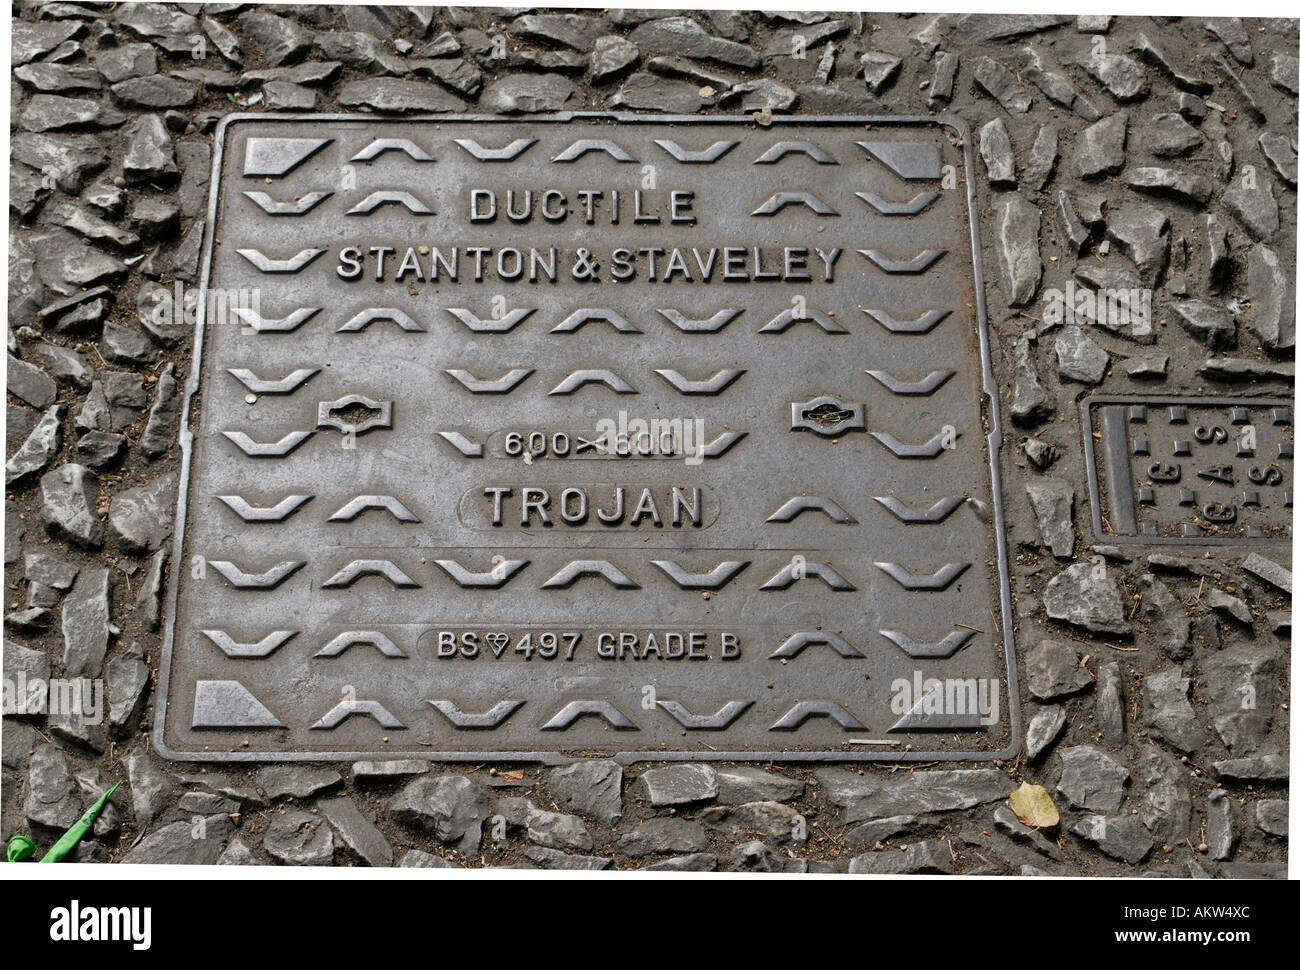 Iron manhole cover made by Ductile Stanton and Staveley The Trojan - Stock Image